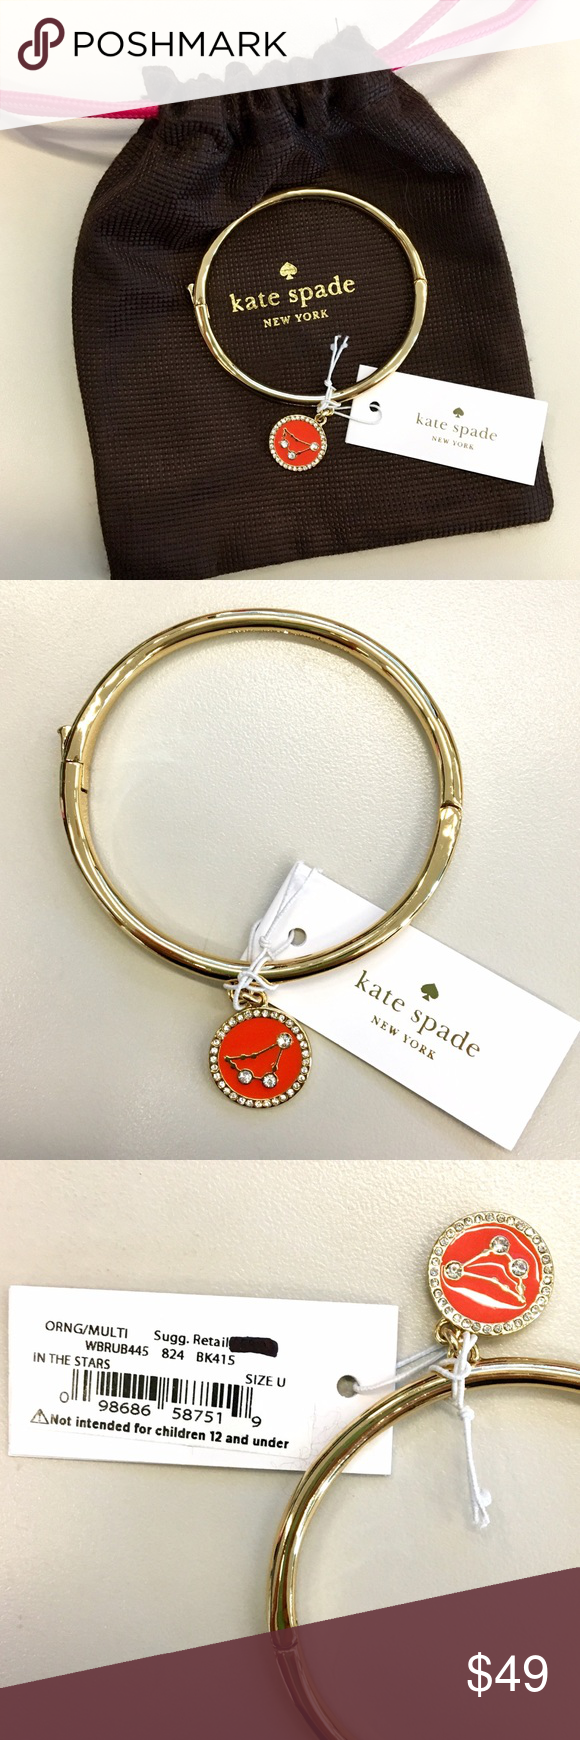 NWT Kate Spade In the stars bracelet Brand new zodiac-themed in the stars bracelet from Kate Spade. Features a gold-plated bangle with pave-and-enamel orange / red charm. So cute for the astronomical star crossed lover :) kate spade Jewelry Bracelets